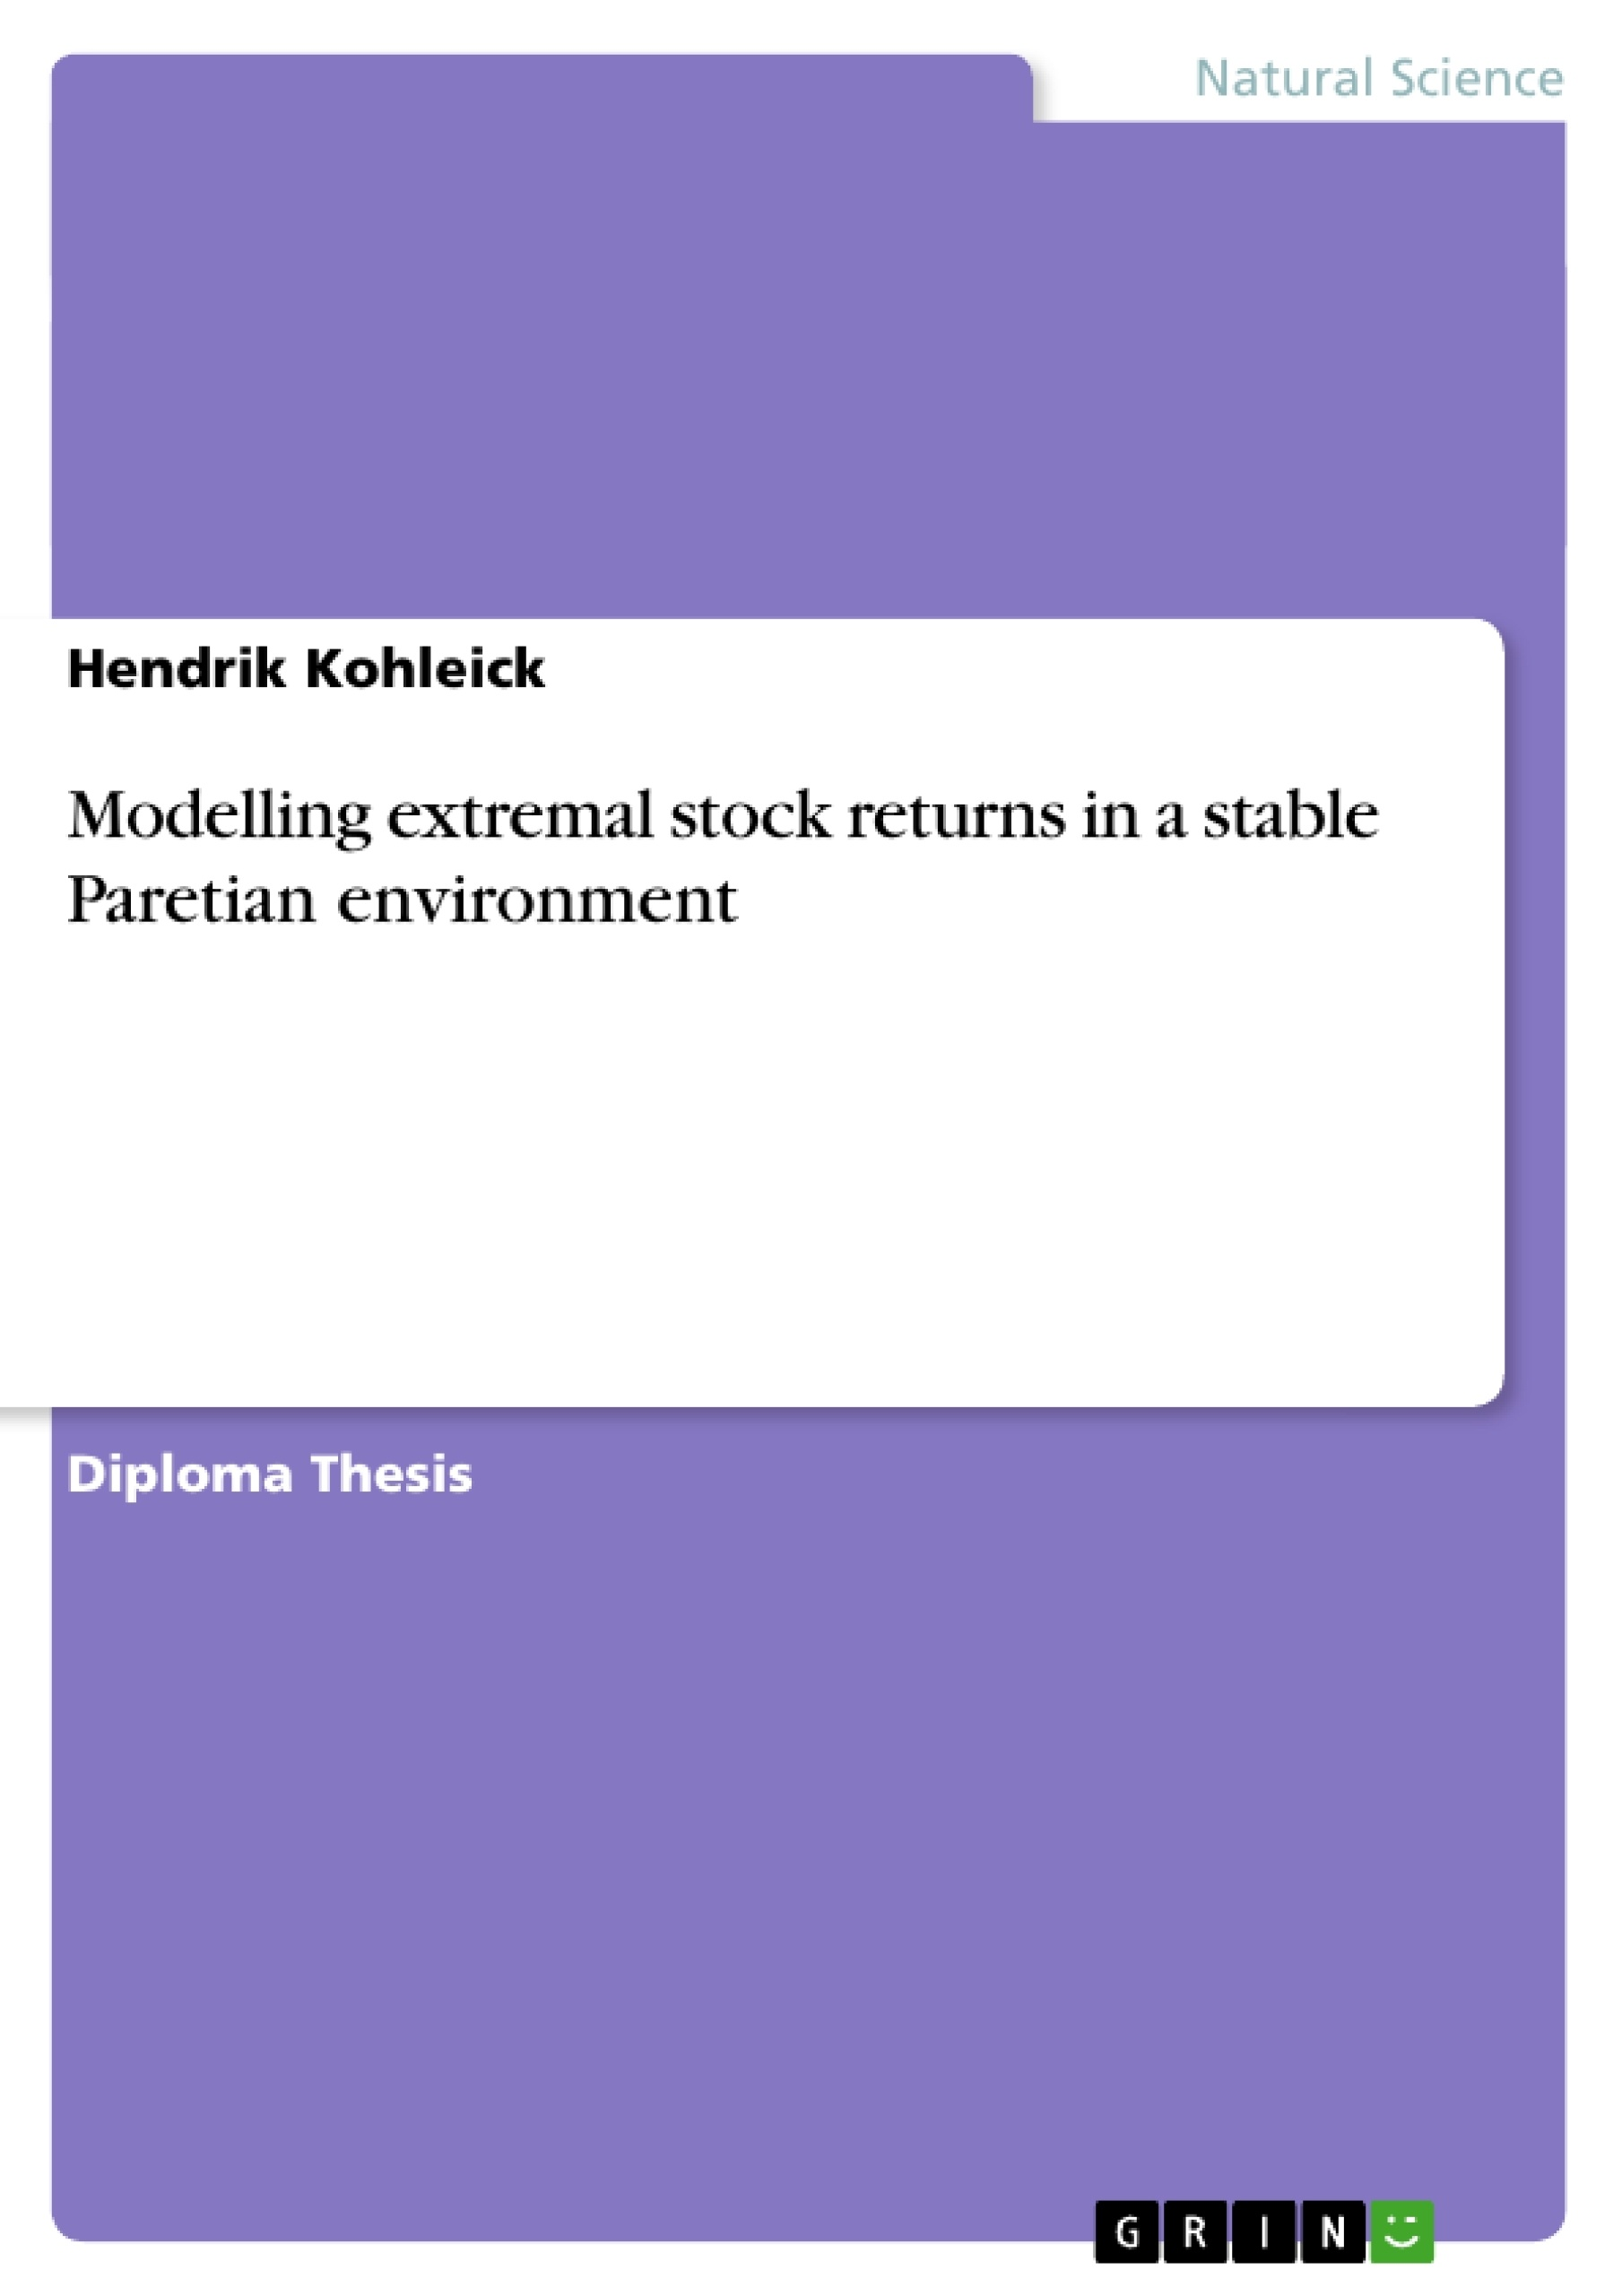 Title: Modelling extremal stock returns in a stable Paretian environment